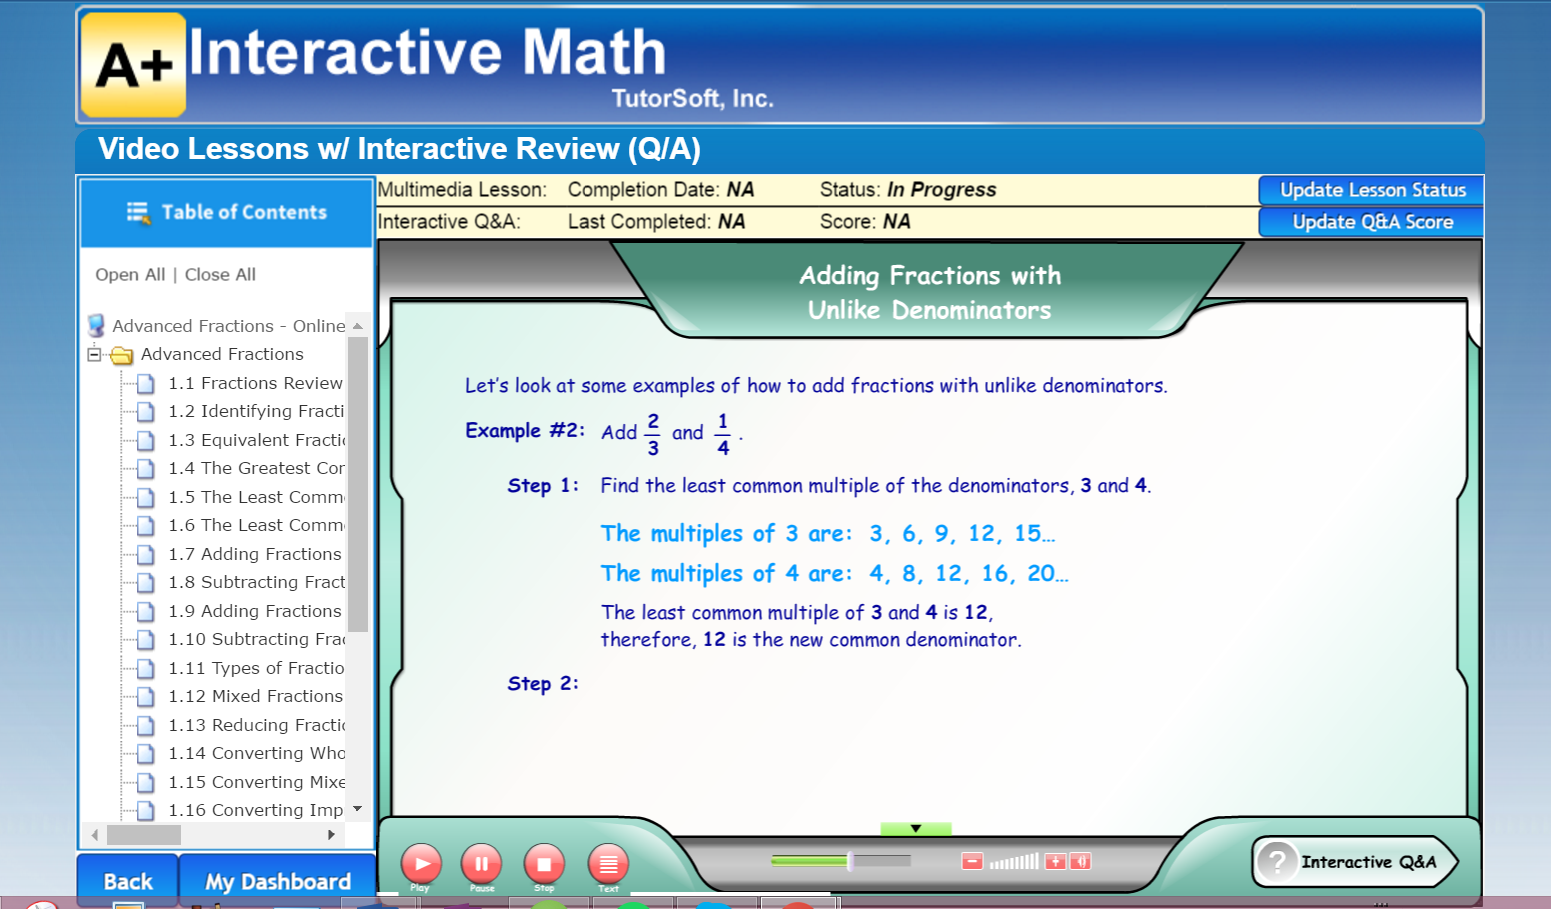 It Covers Adding, Subtracting, Converting, Reducing, And Everything You  Would Expect In '